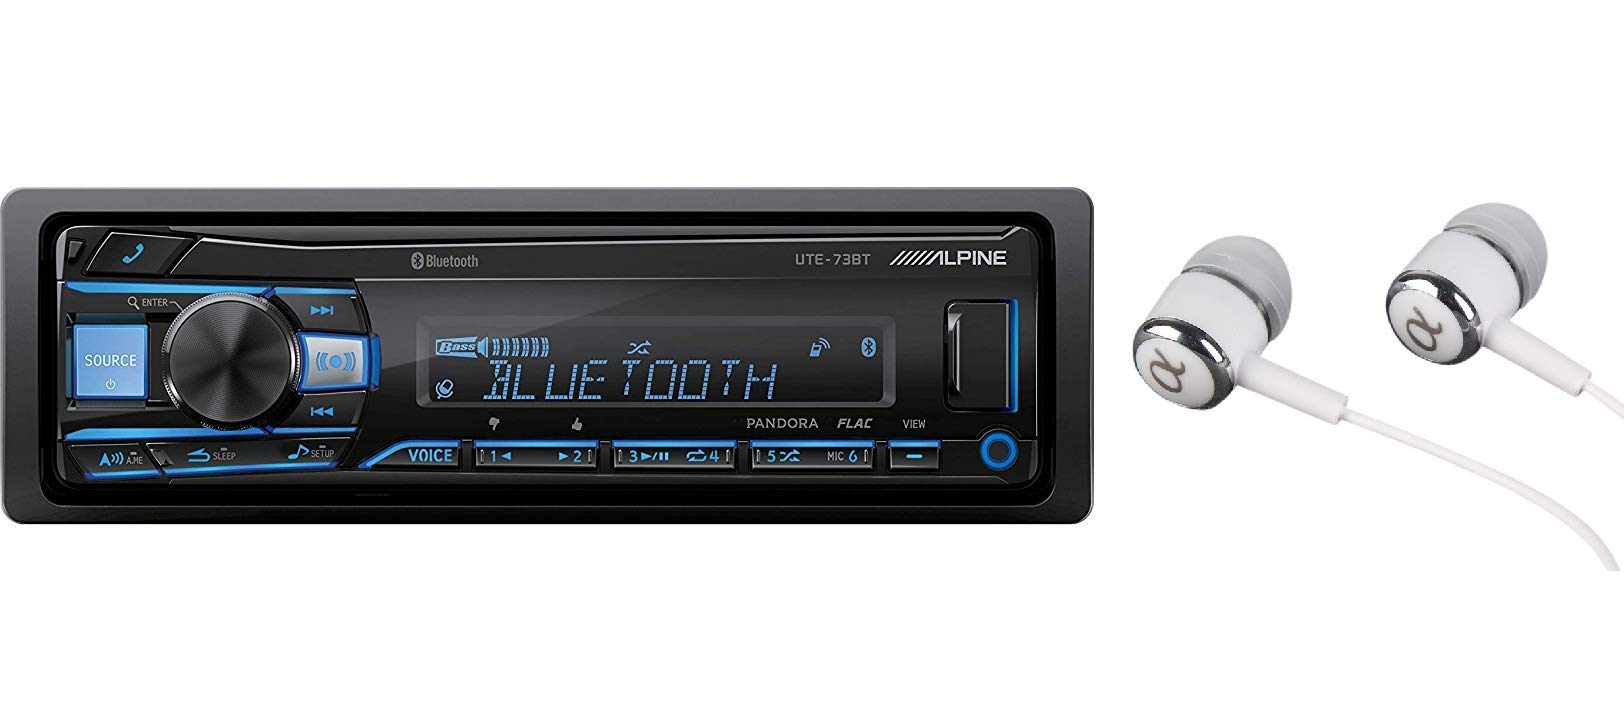 Alpine UTE-73BT In-Dash Single Din MP3 Am/FM Receiver Dual USB, Front Auxiliary, Iphone Pandora Internet Radio, Variable Color Illumination, Digital Media Receiver/Free Alphasonik Earbuds by Alpine